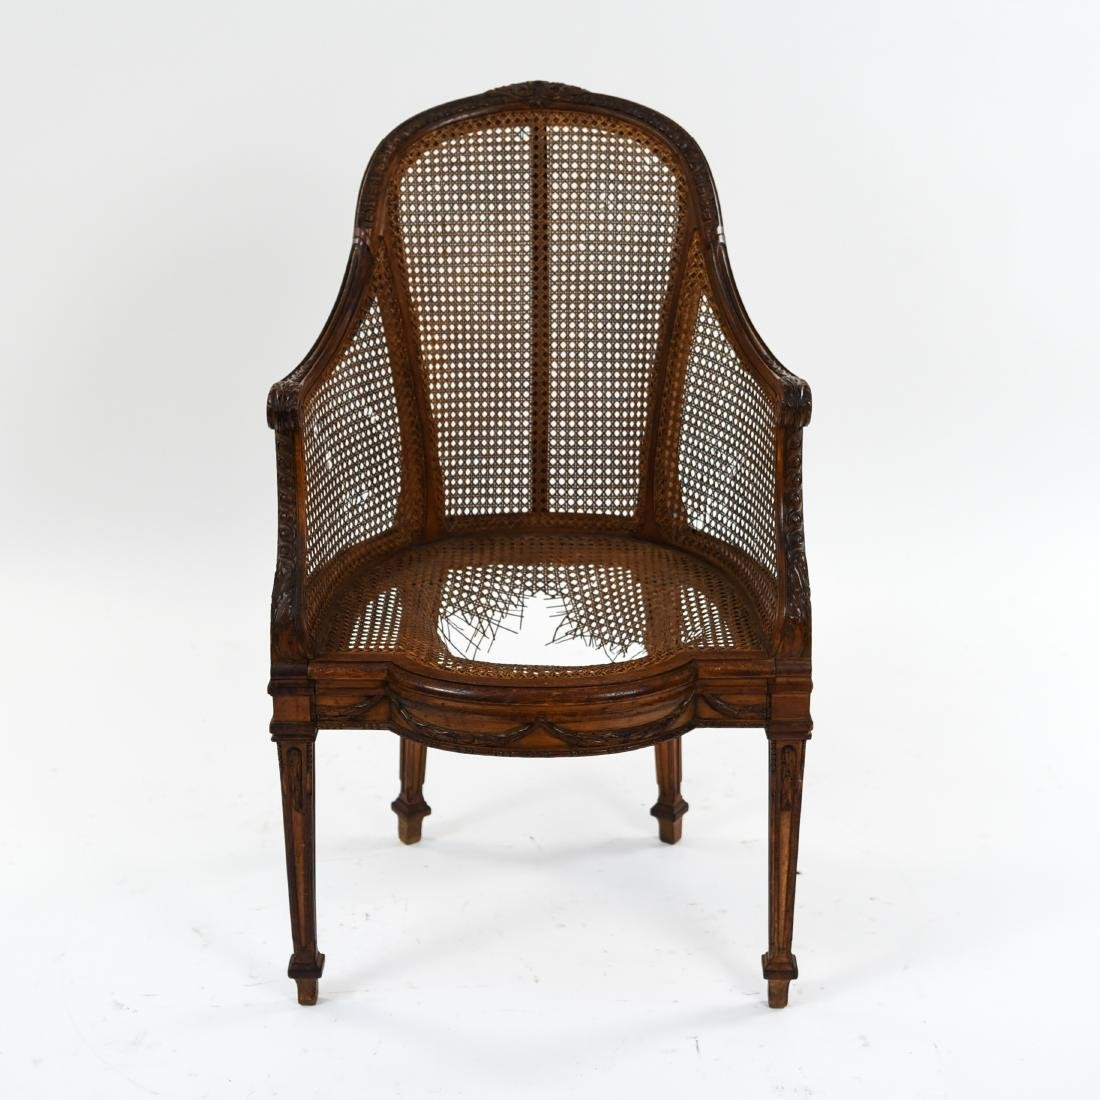 ANTIQUE FRENCH CANED CHAIR